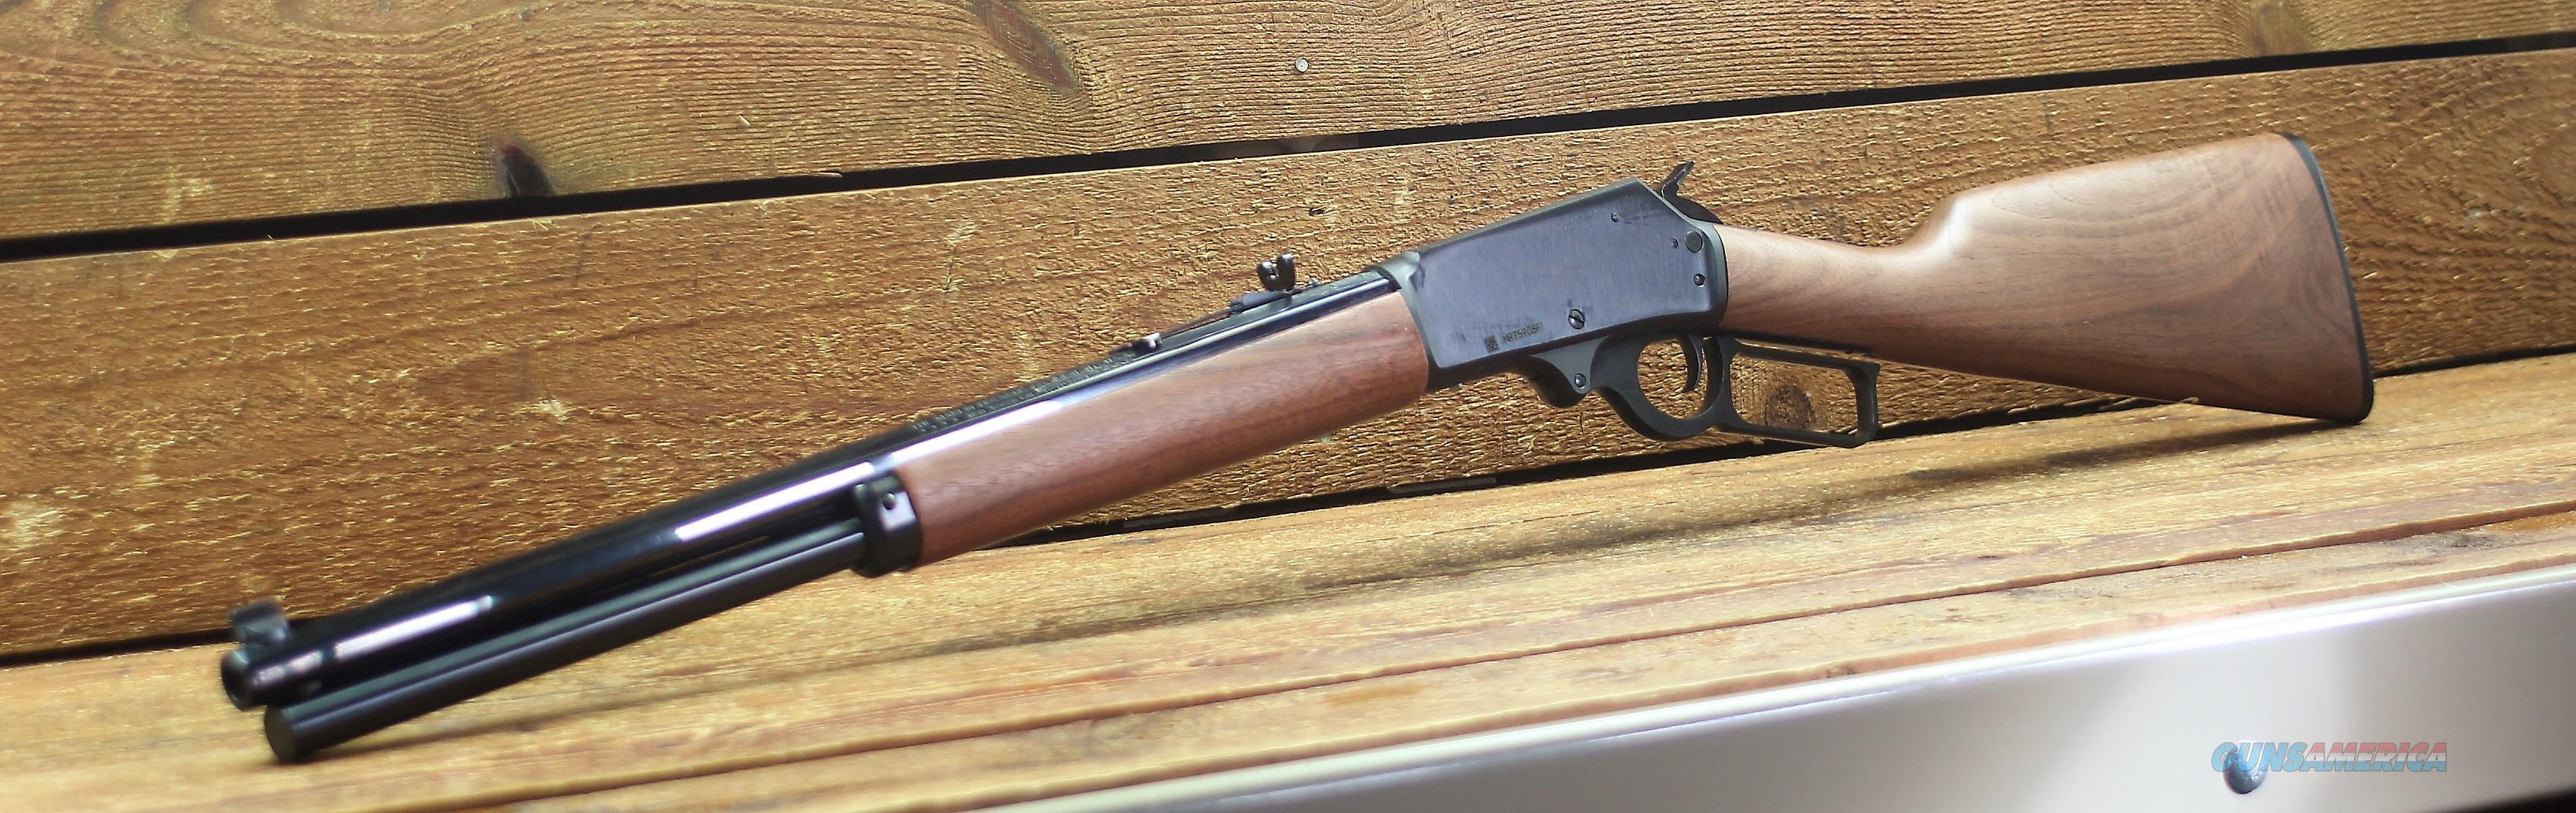 $68 EASY PAY  Proud of the American Design Marlin model 1895 Cowboy Lever Action Walnut Stock Wood  Big Game Hunting Metal Finish Rifle Caliber 45-70 Government Octagon Muzzle marble carbine front sight octagon 6-shot MAG barrel 70458  Guns > Rifles > Marlin Rifles > Modern > Lever Action